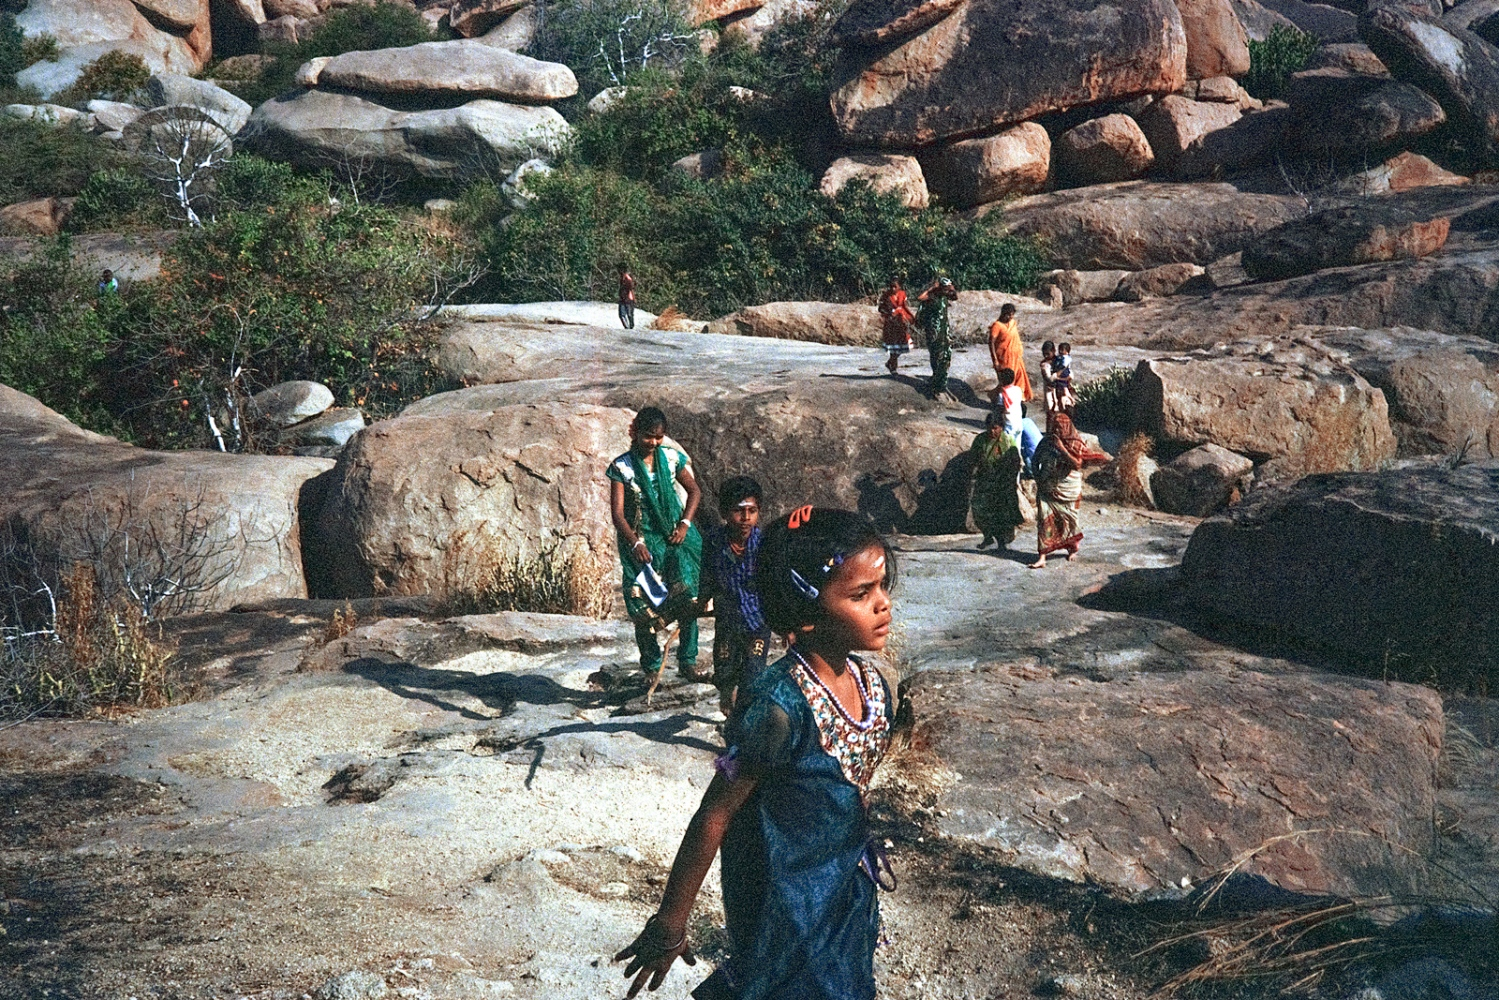 A family walk through the boulders, Anegundi.